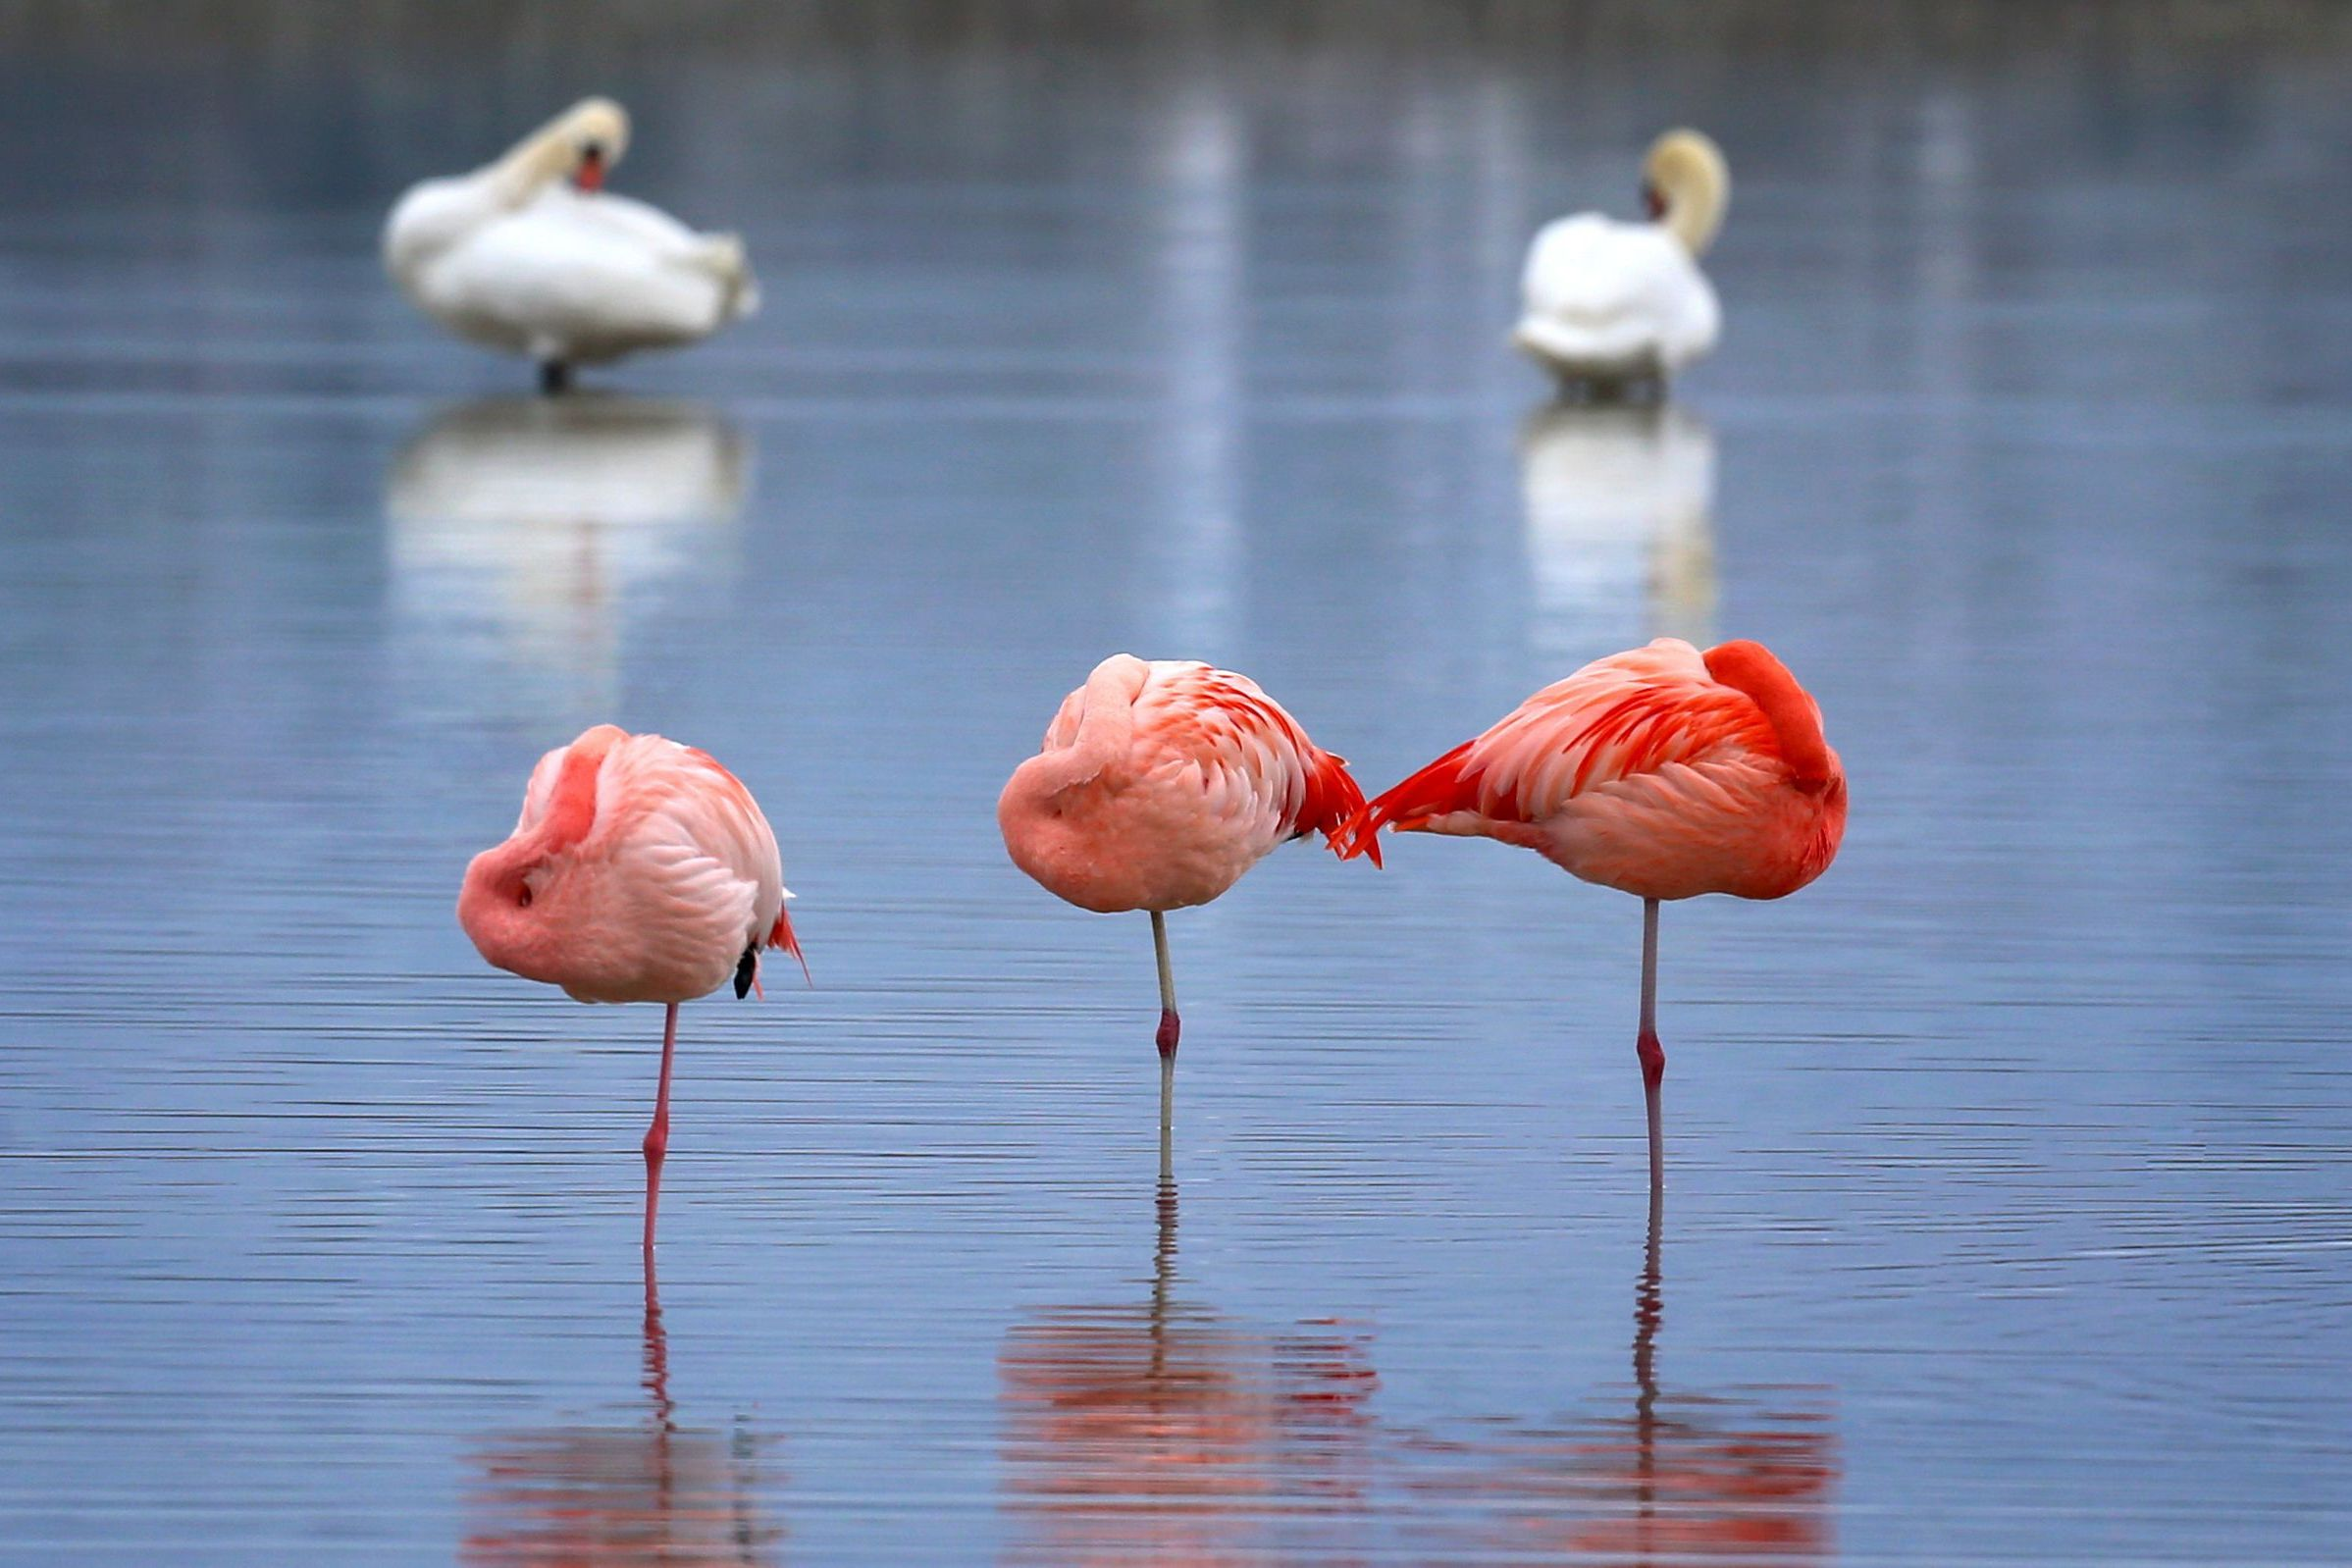 Science Finally Discovered Why Flamingos Stand on 1 Leg